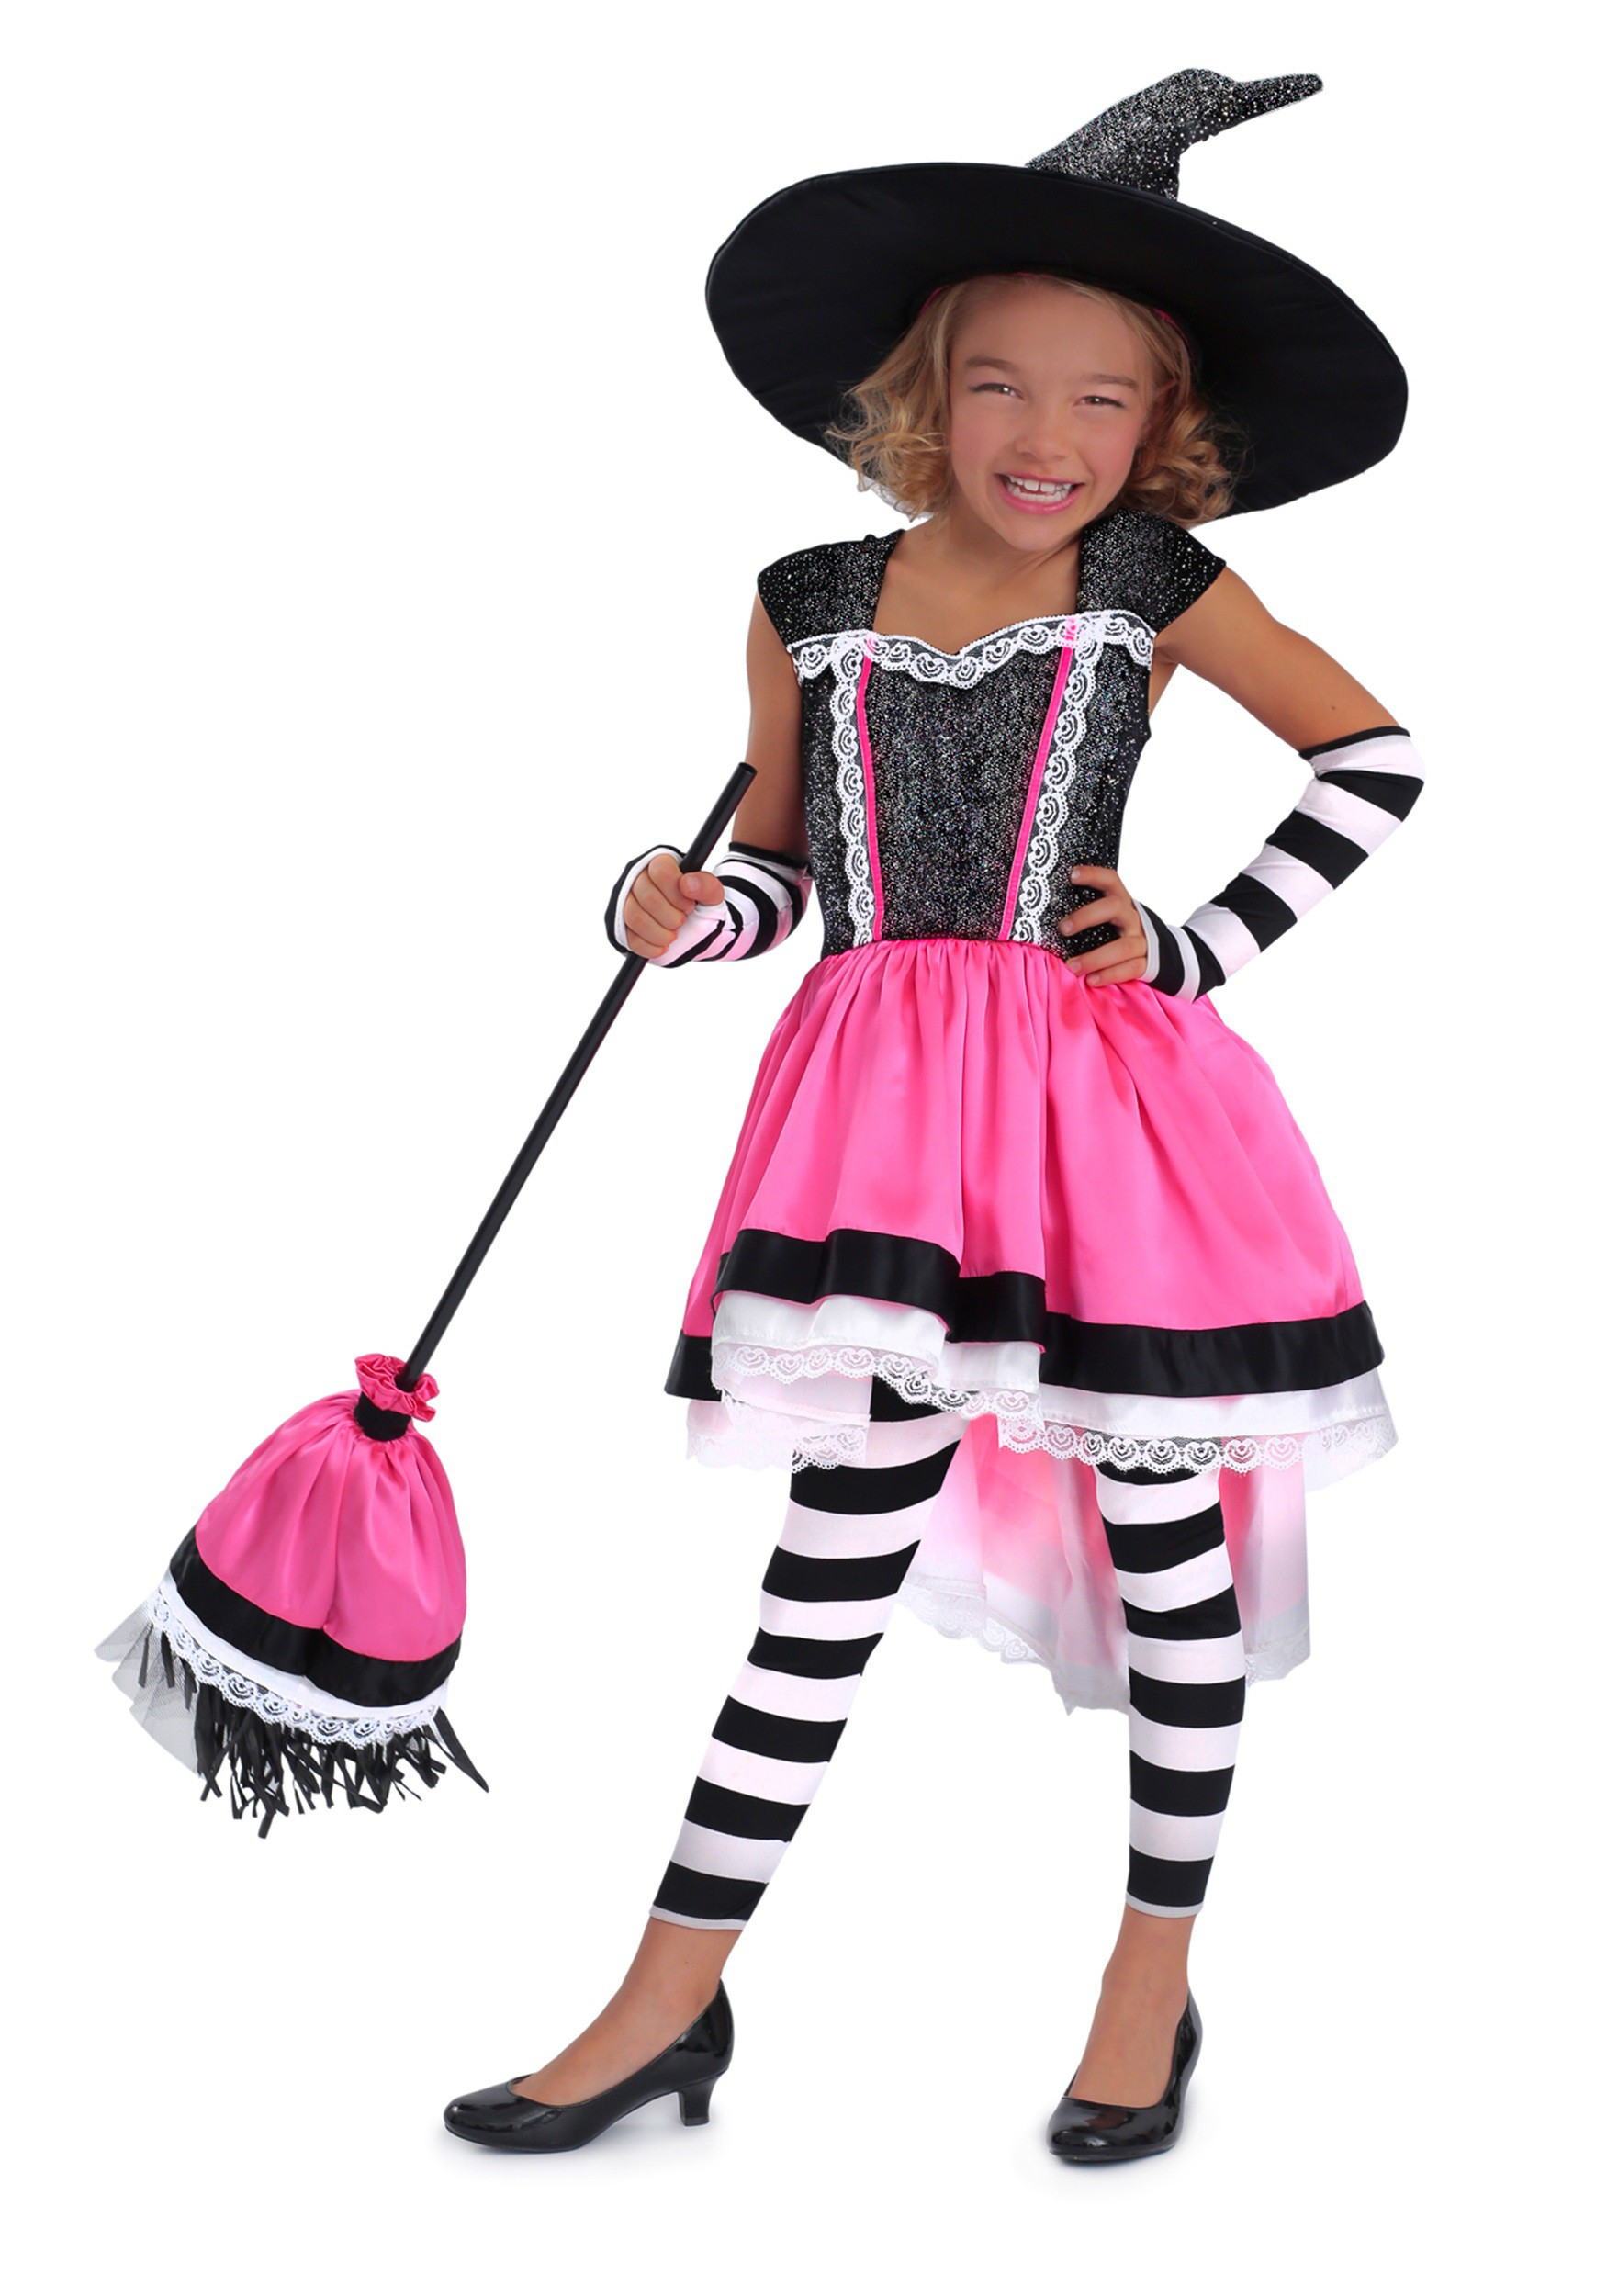 1d1de6334 Childu0027s Luna The Witch Costume Sc 1 St Halloween Costumes 2018 At  CostumeVip.com | Halloween Costume Ideas 2018